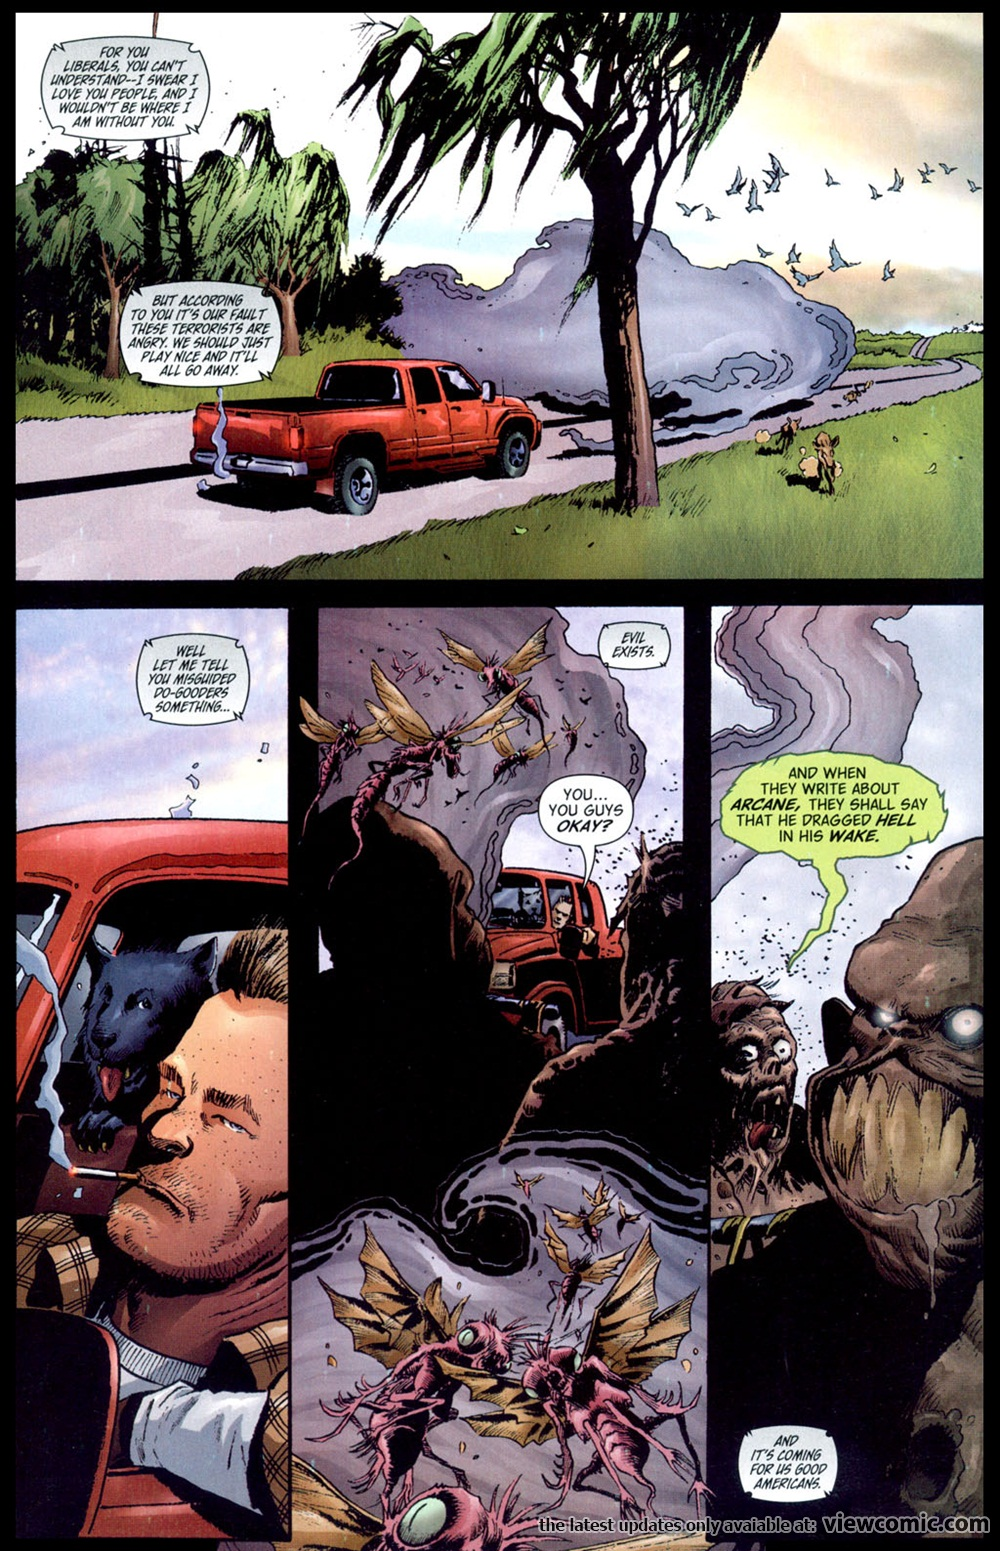 Swamp Thing v4 011 | Vietcomic.net reading comics online for free